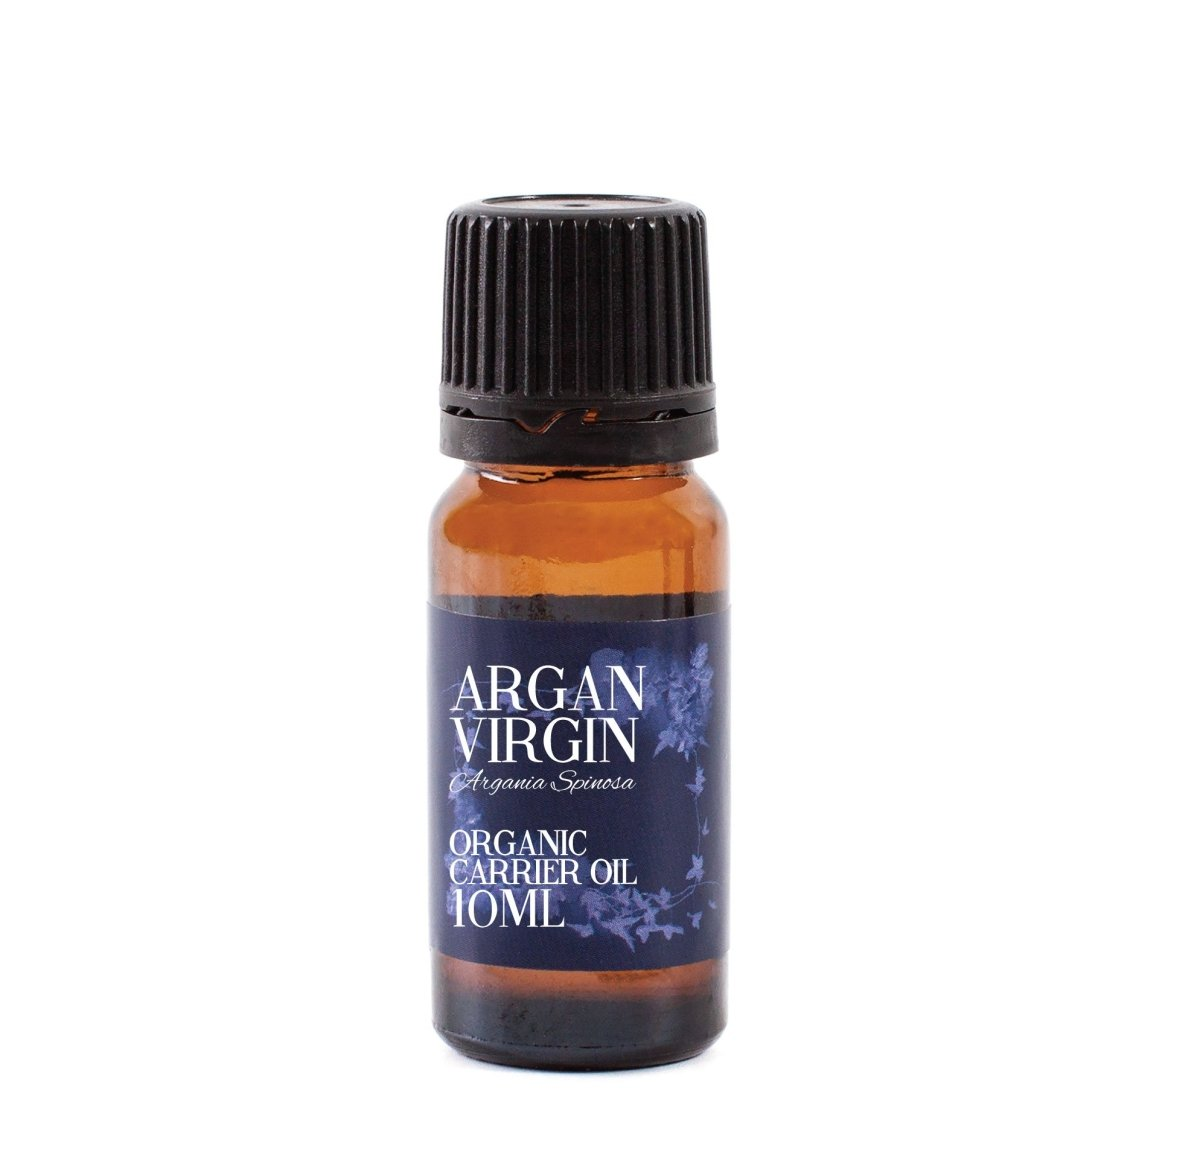 Argan Virgin Organic Carrier Oil - Mystic Moments UK